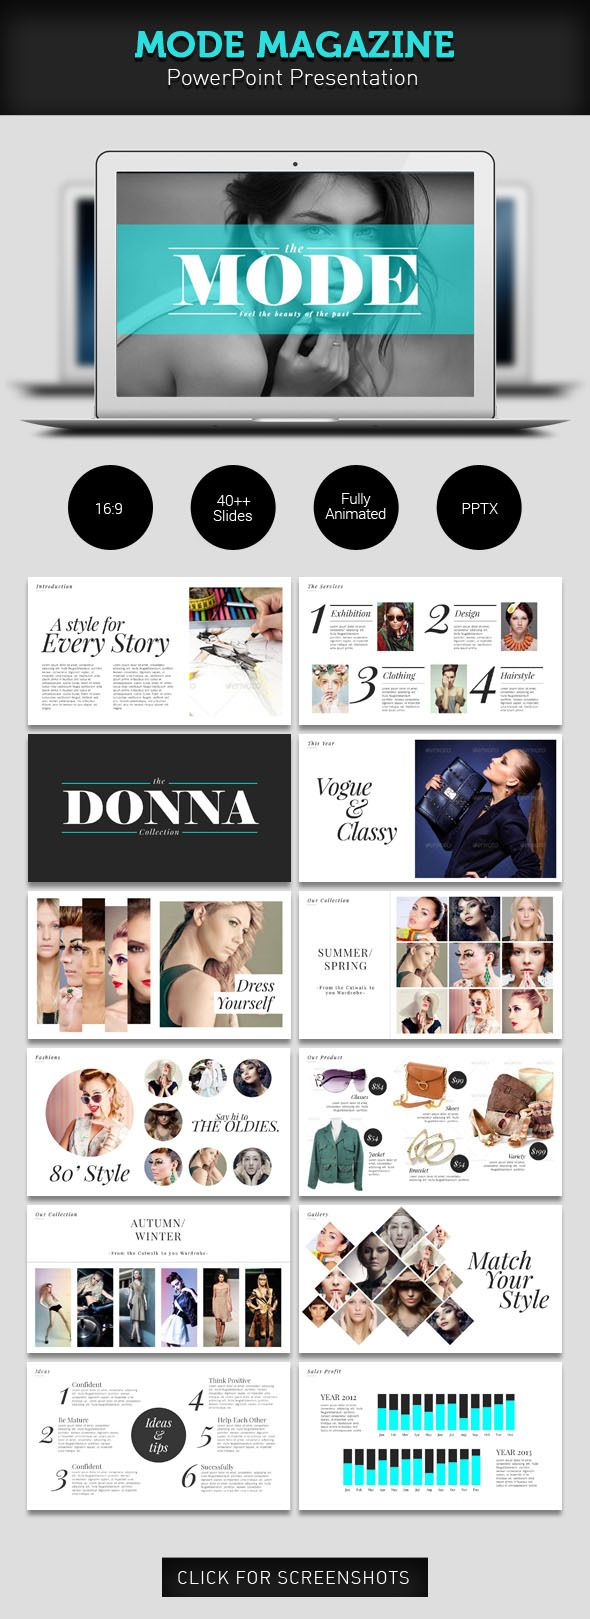 40 best presentation images on pinterest | presentation, Presentation templates